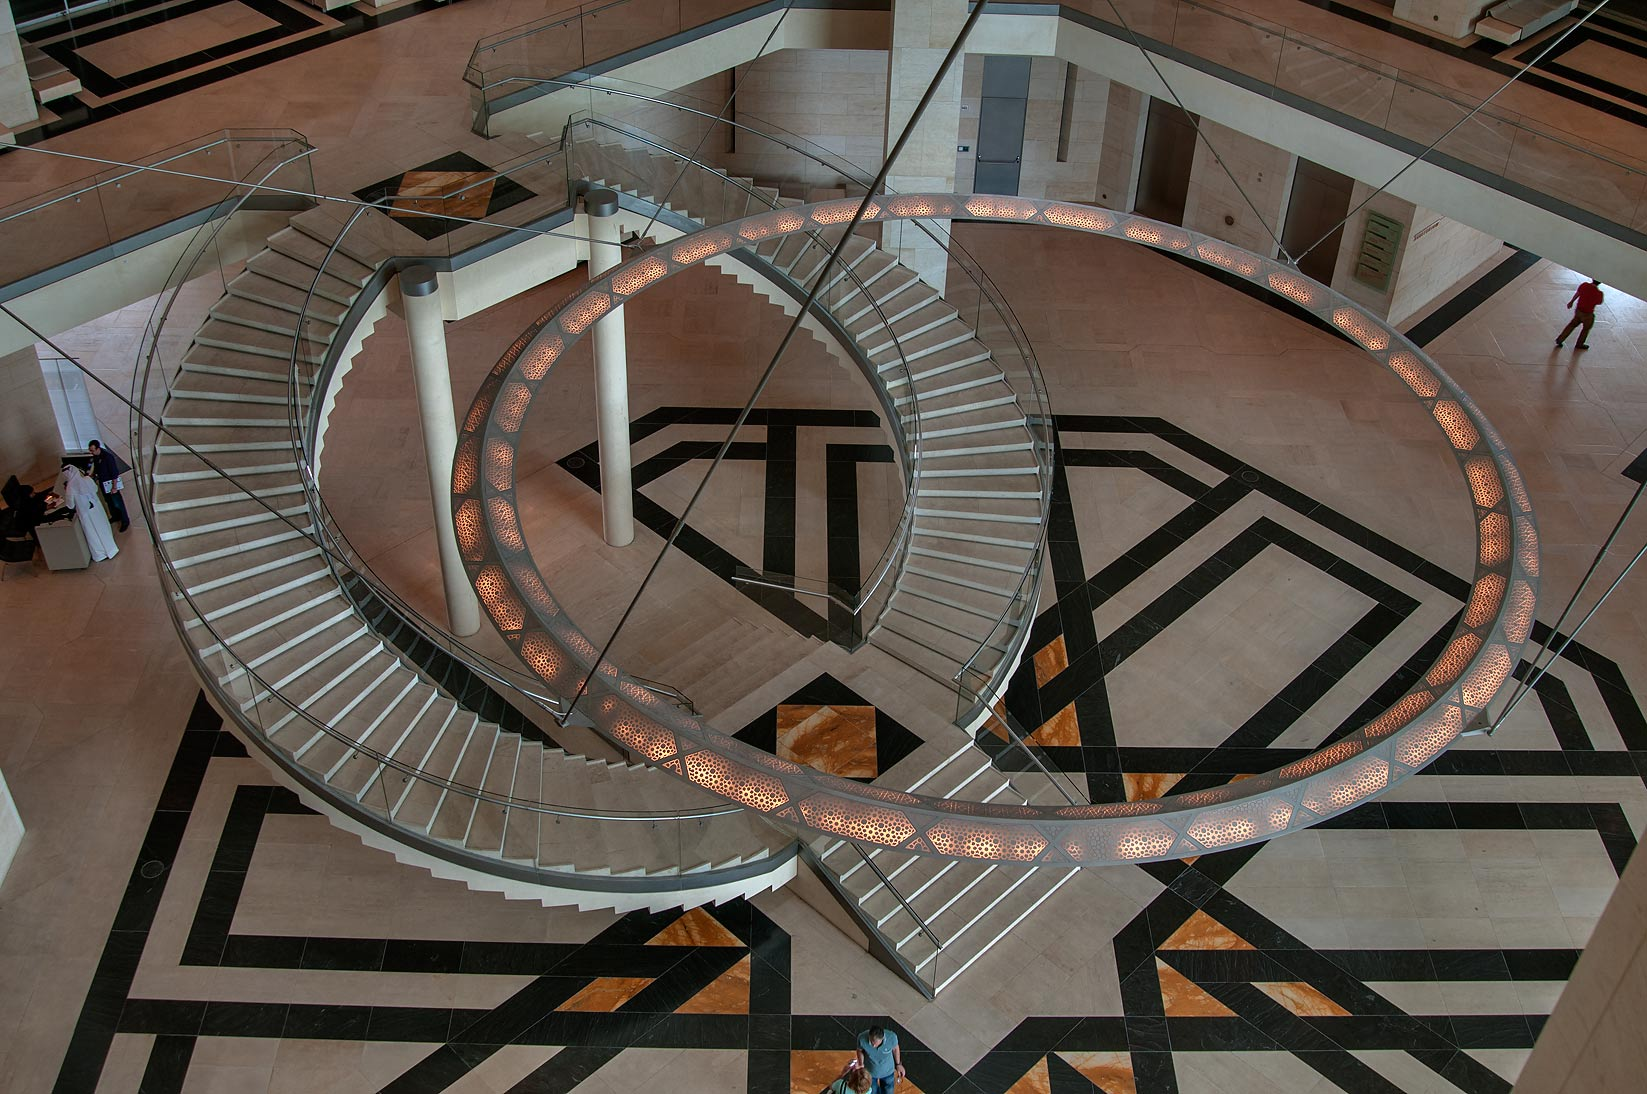 Chandelier and stairs of Museum of Islamic Art from the fourth floor. Doha, Qatar